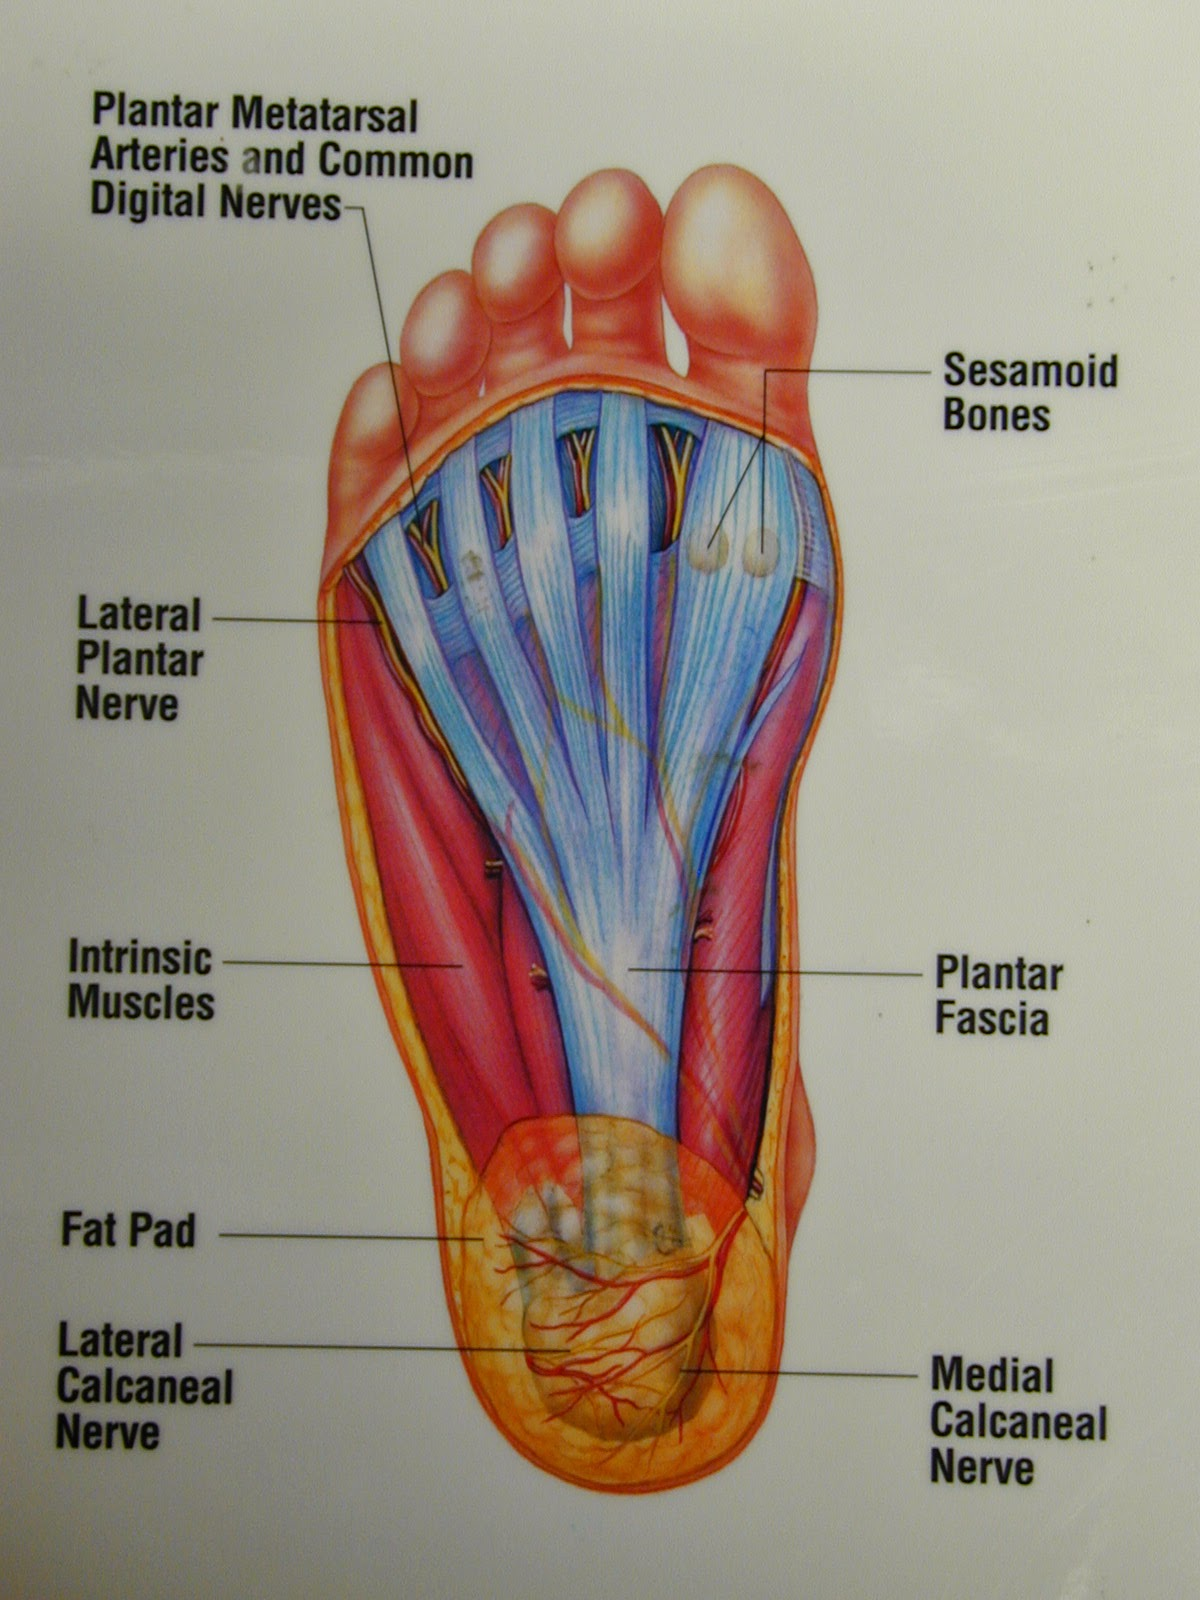 hight resolution of plantar fasciitis is the most common cause of heel pain the pain is caused by inflammation of the tissue along the bottom of your foot that connects your